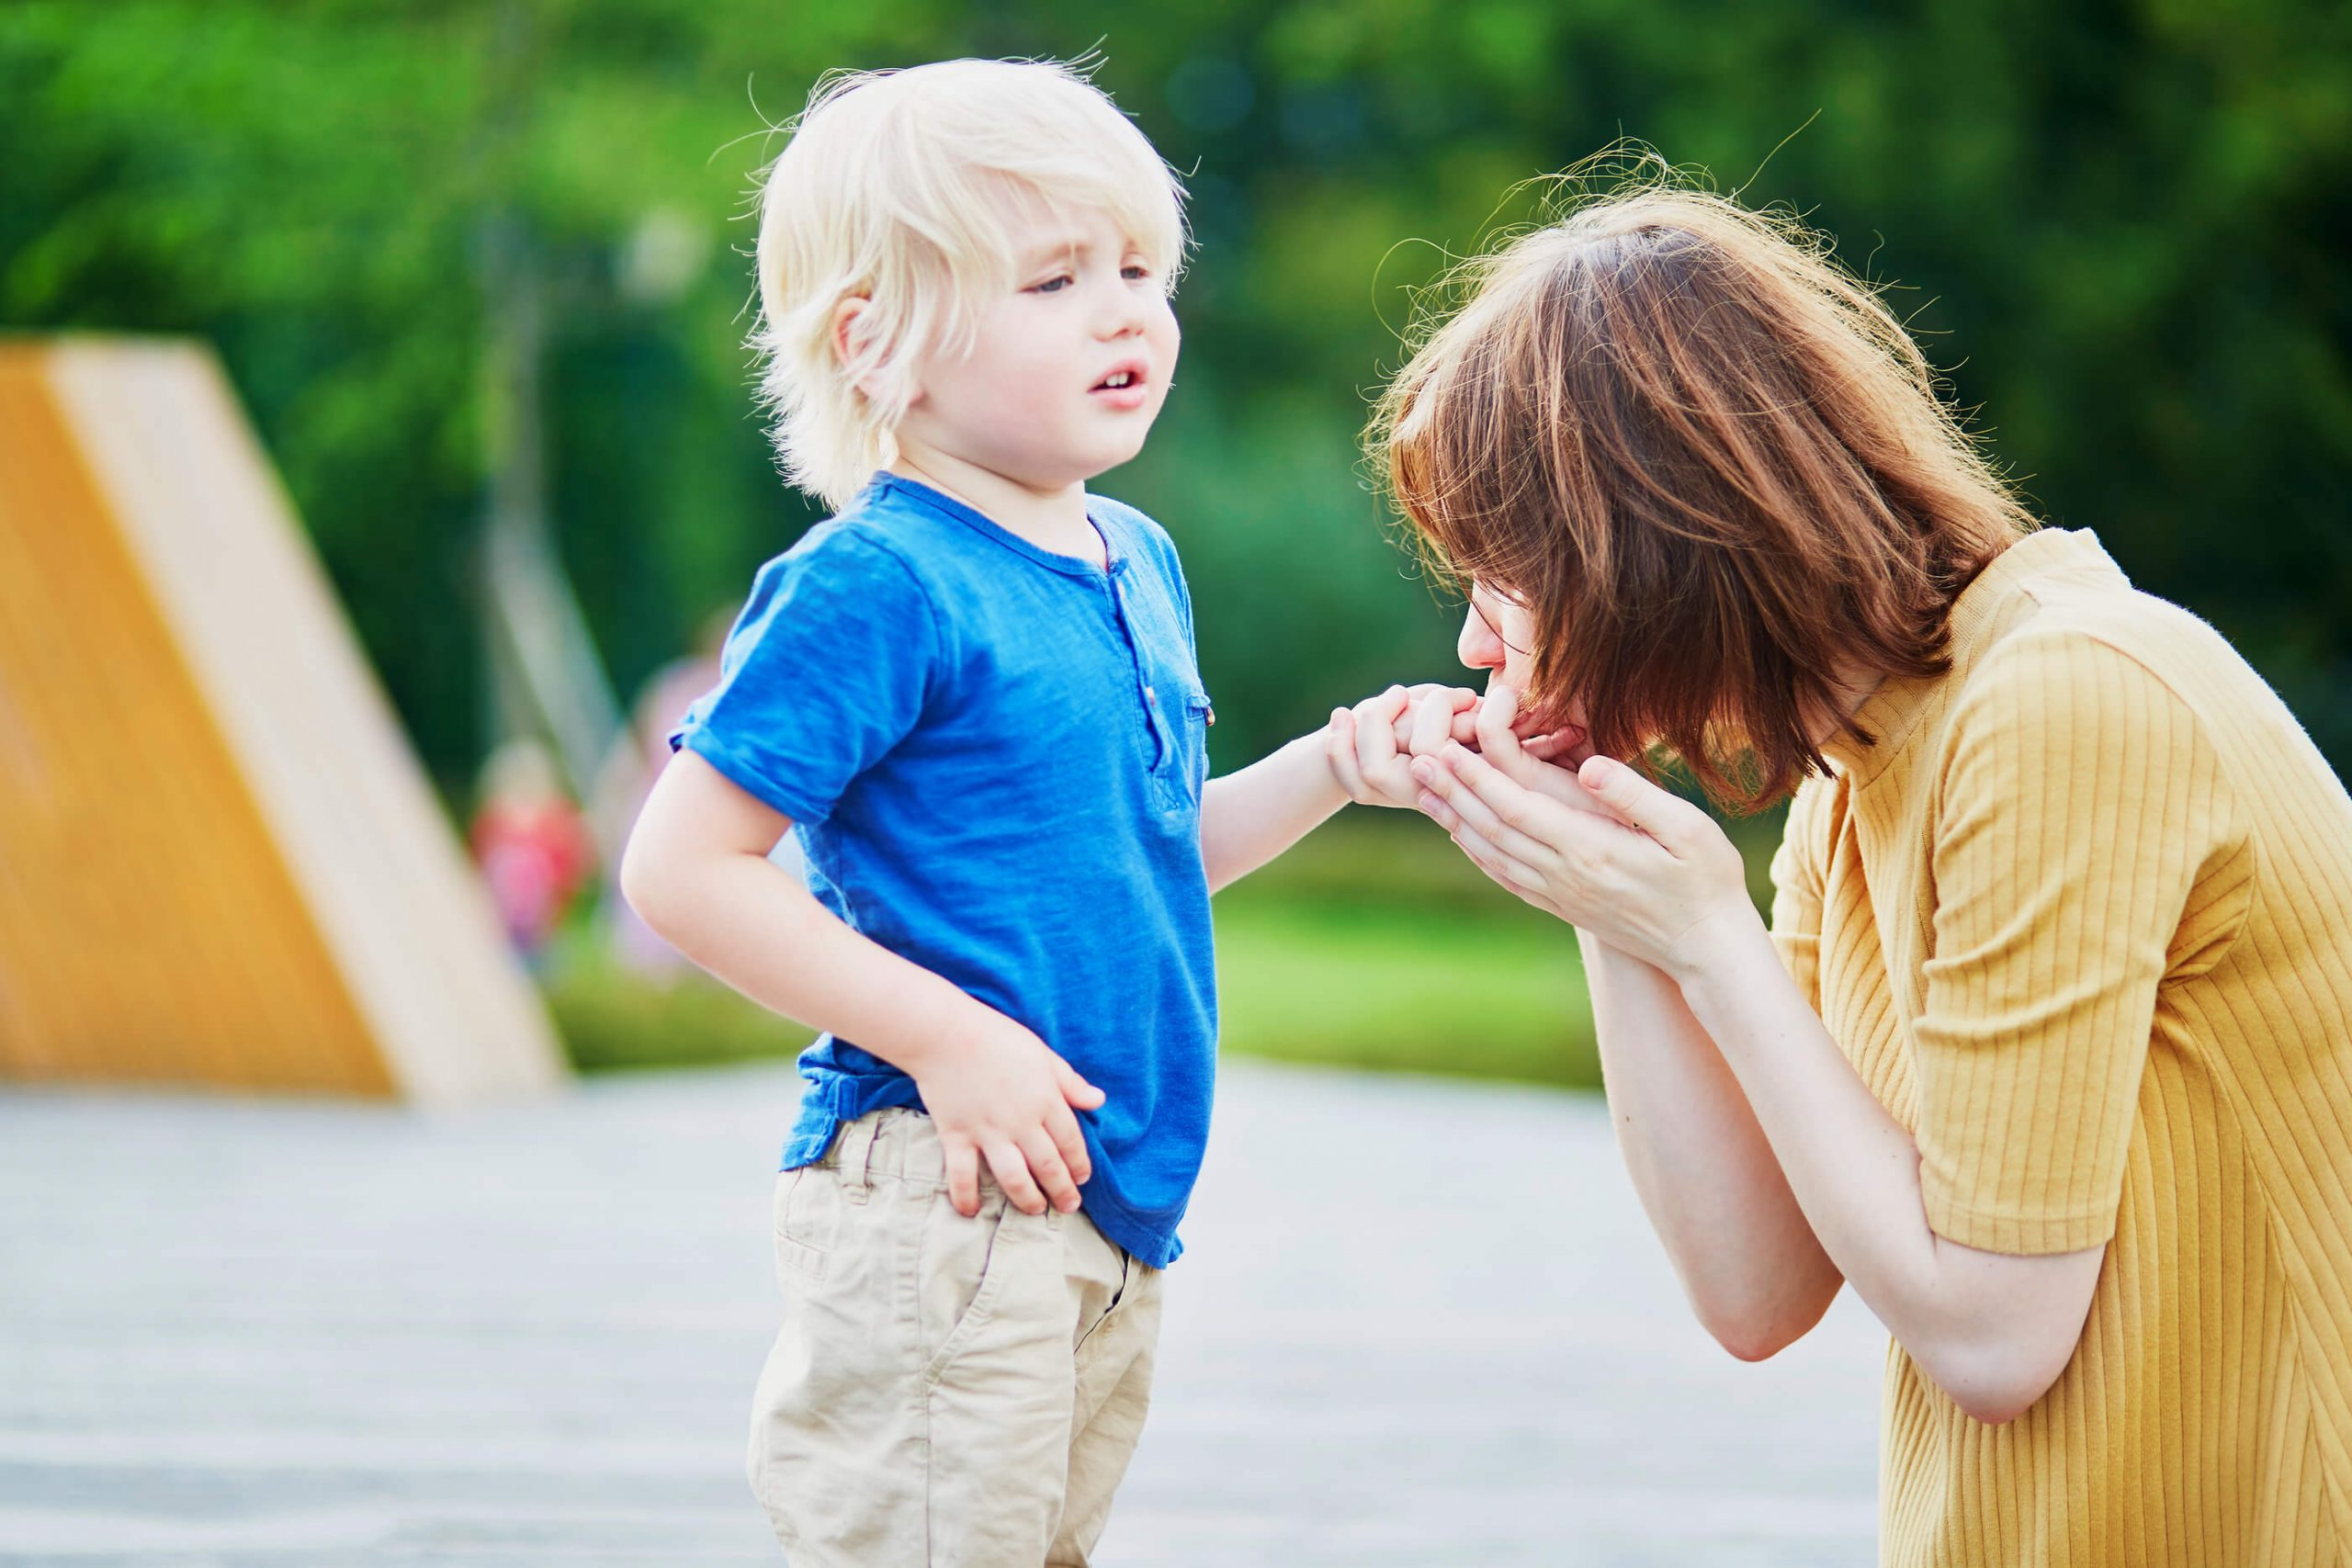 Mother-Comforting-Her-Injured-Son-At-playground